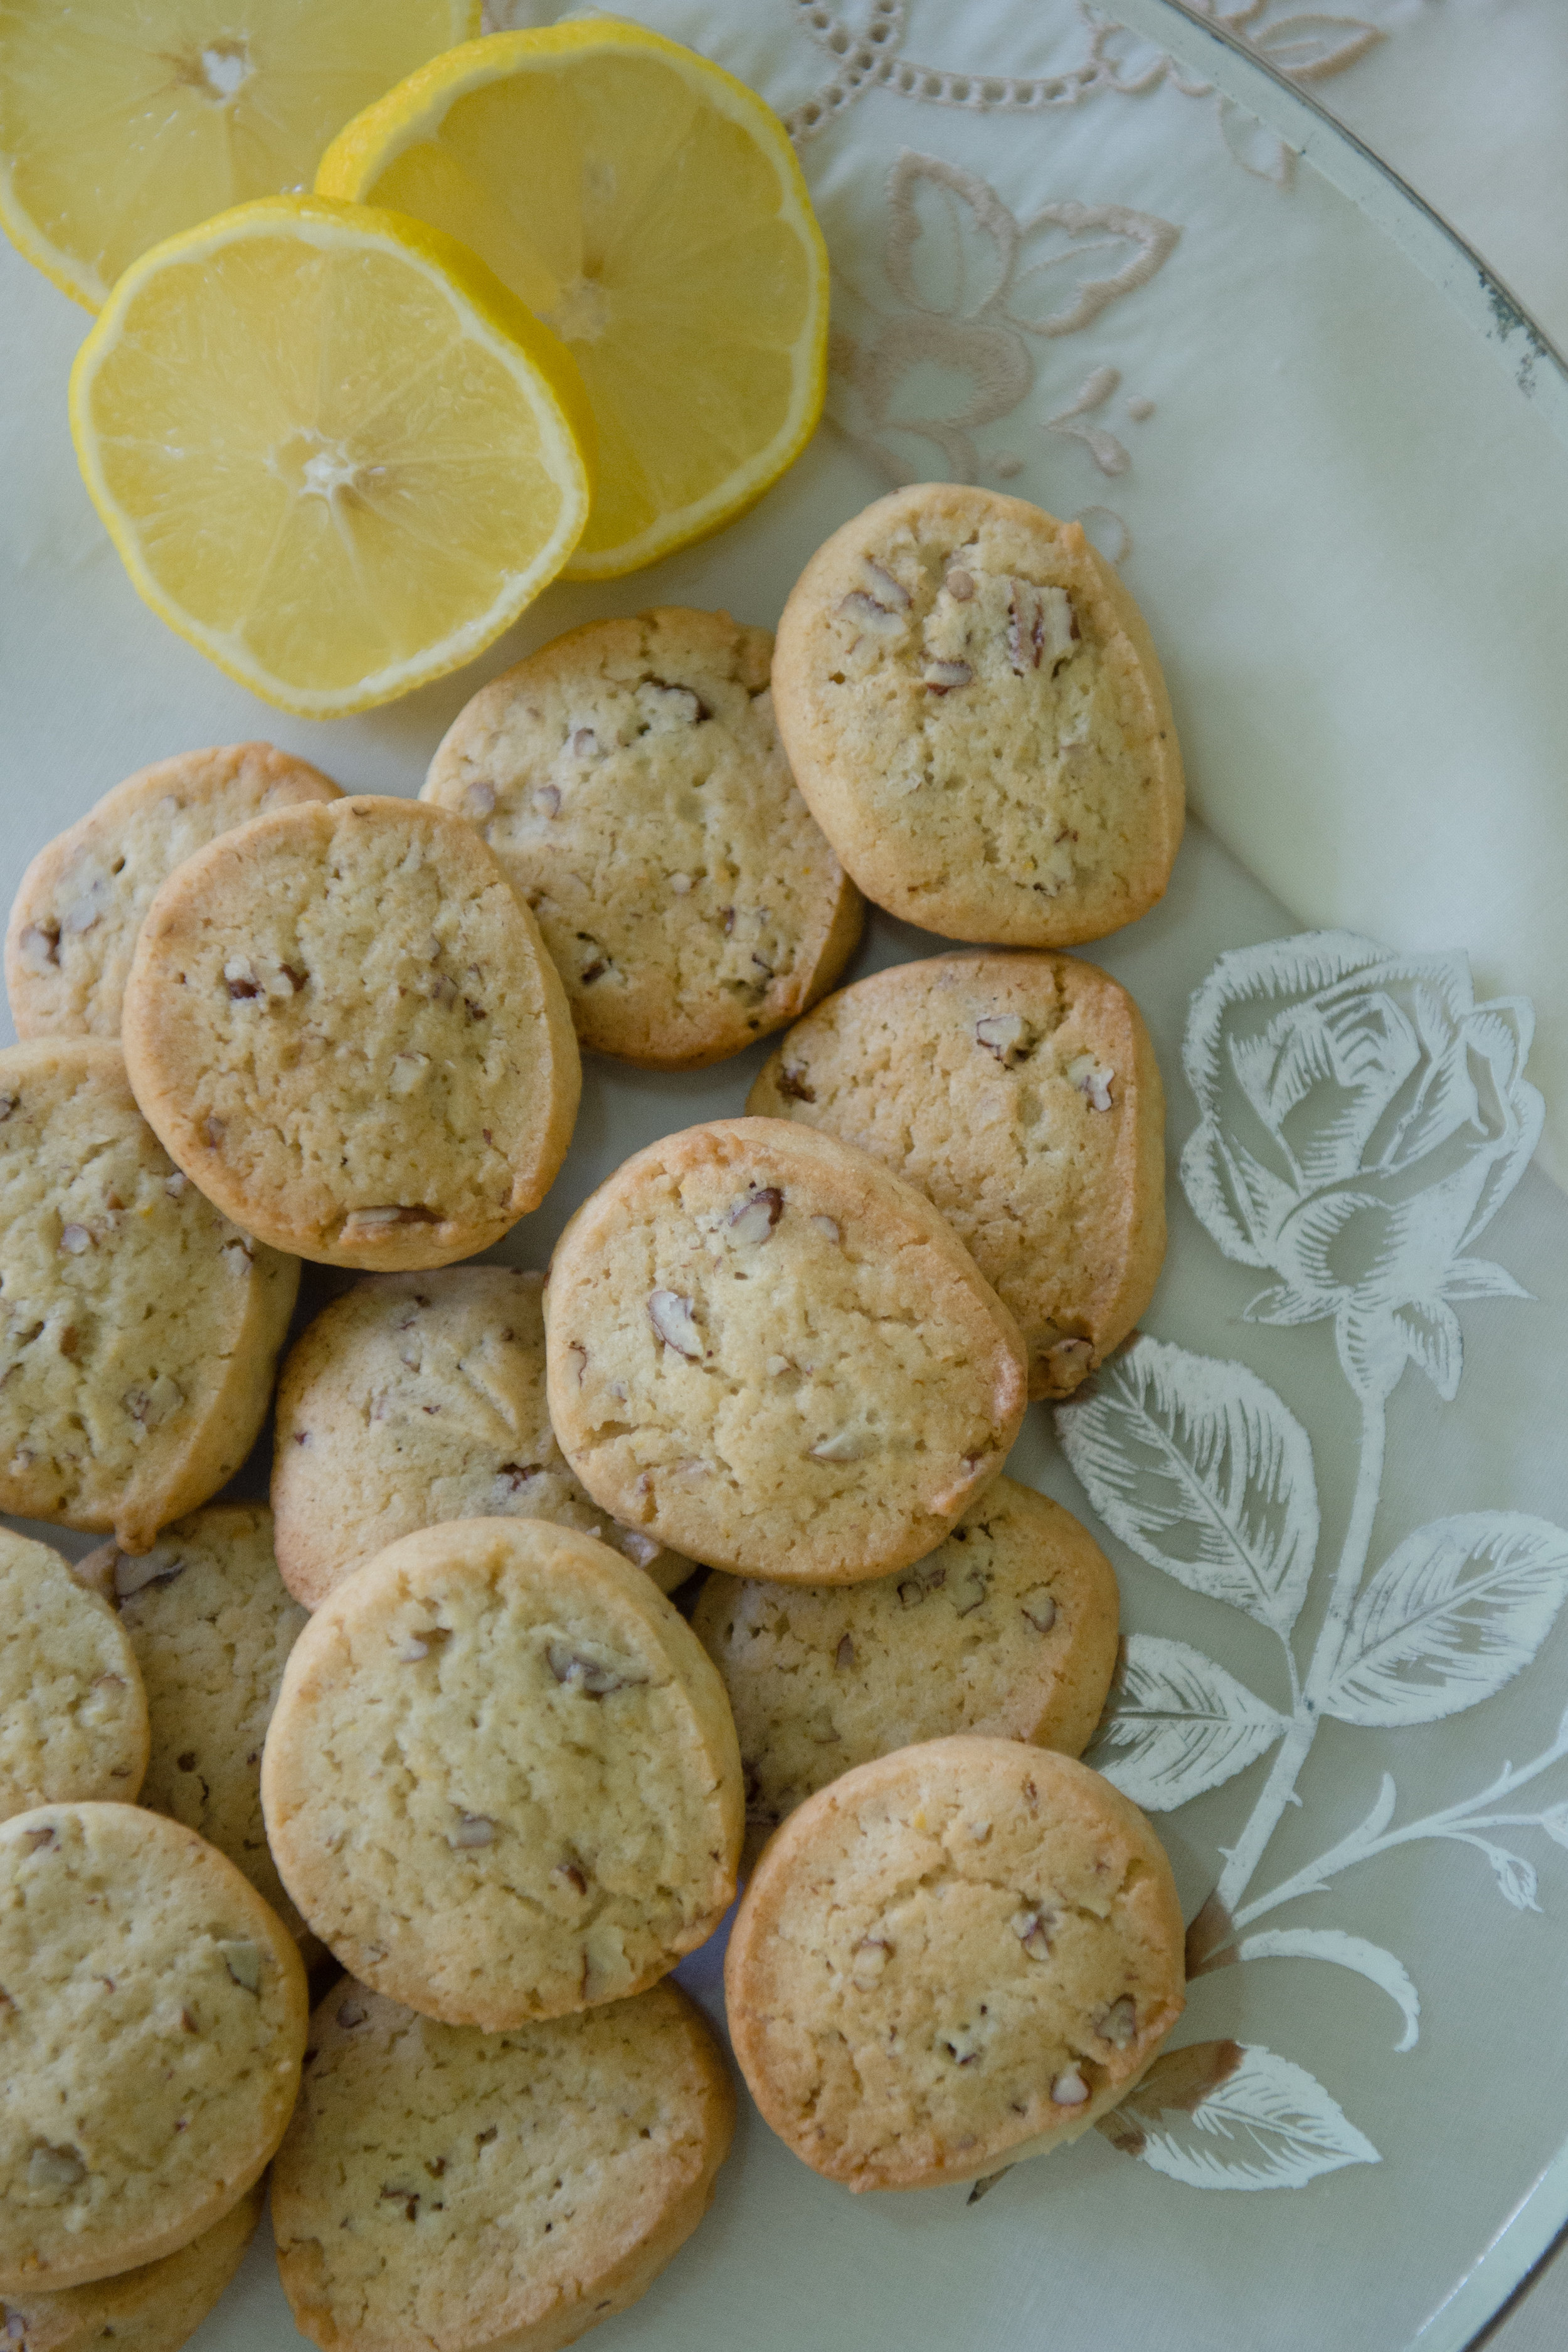 Lemon icebox cookies, made from a recipe that belonged to Lucille Burton, on a platter and with a linen napkin that both also belonged to Burton.